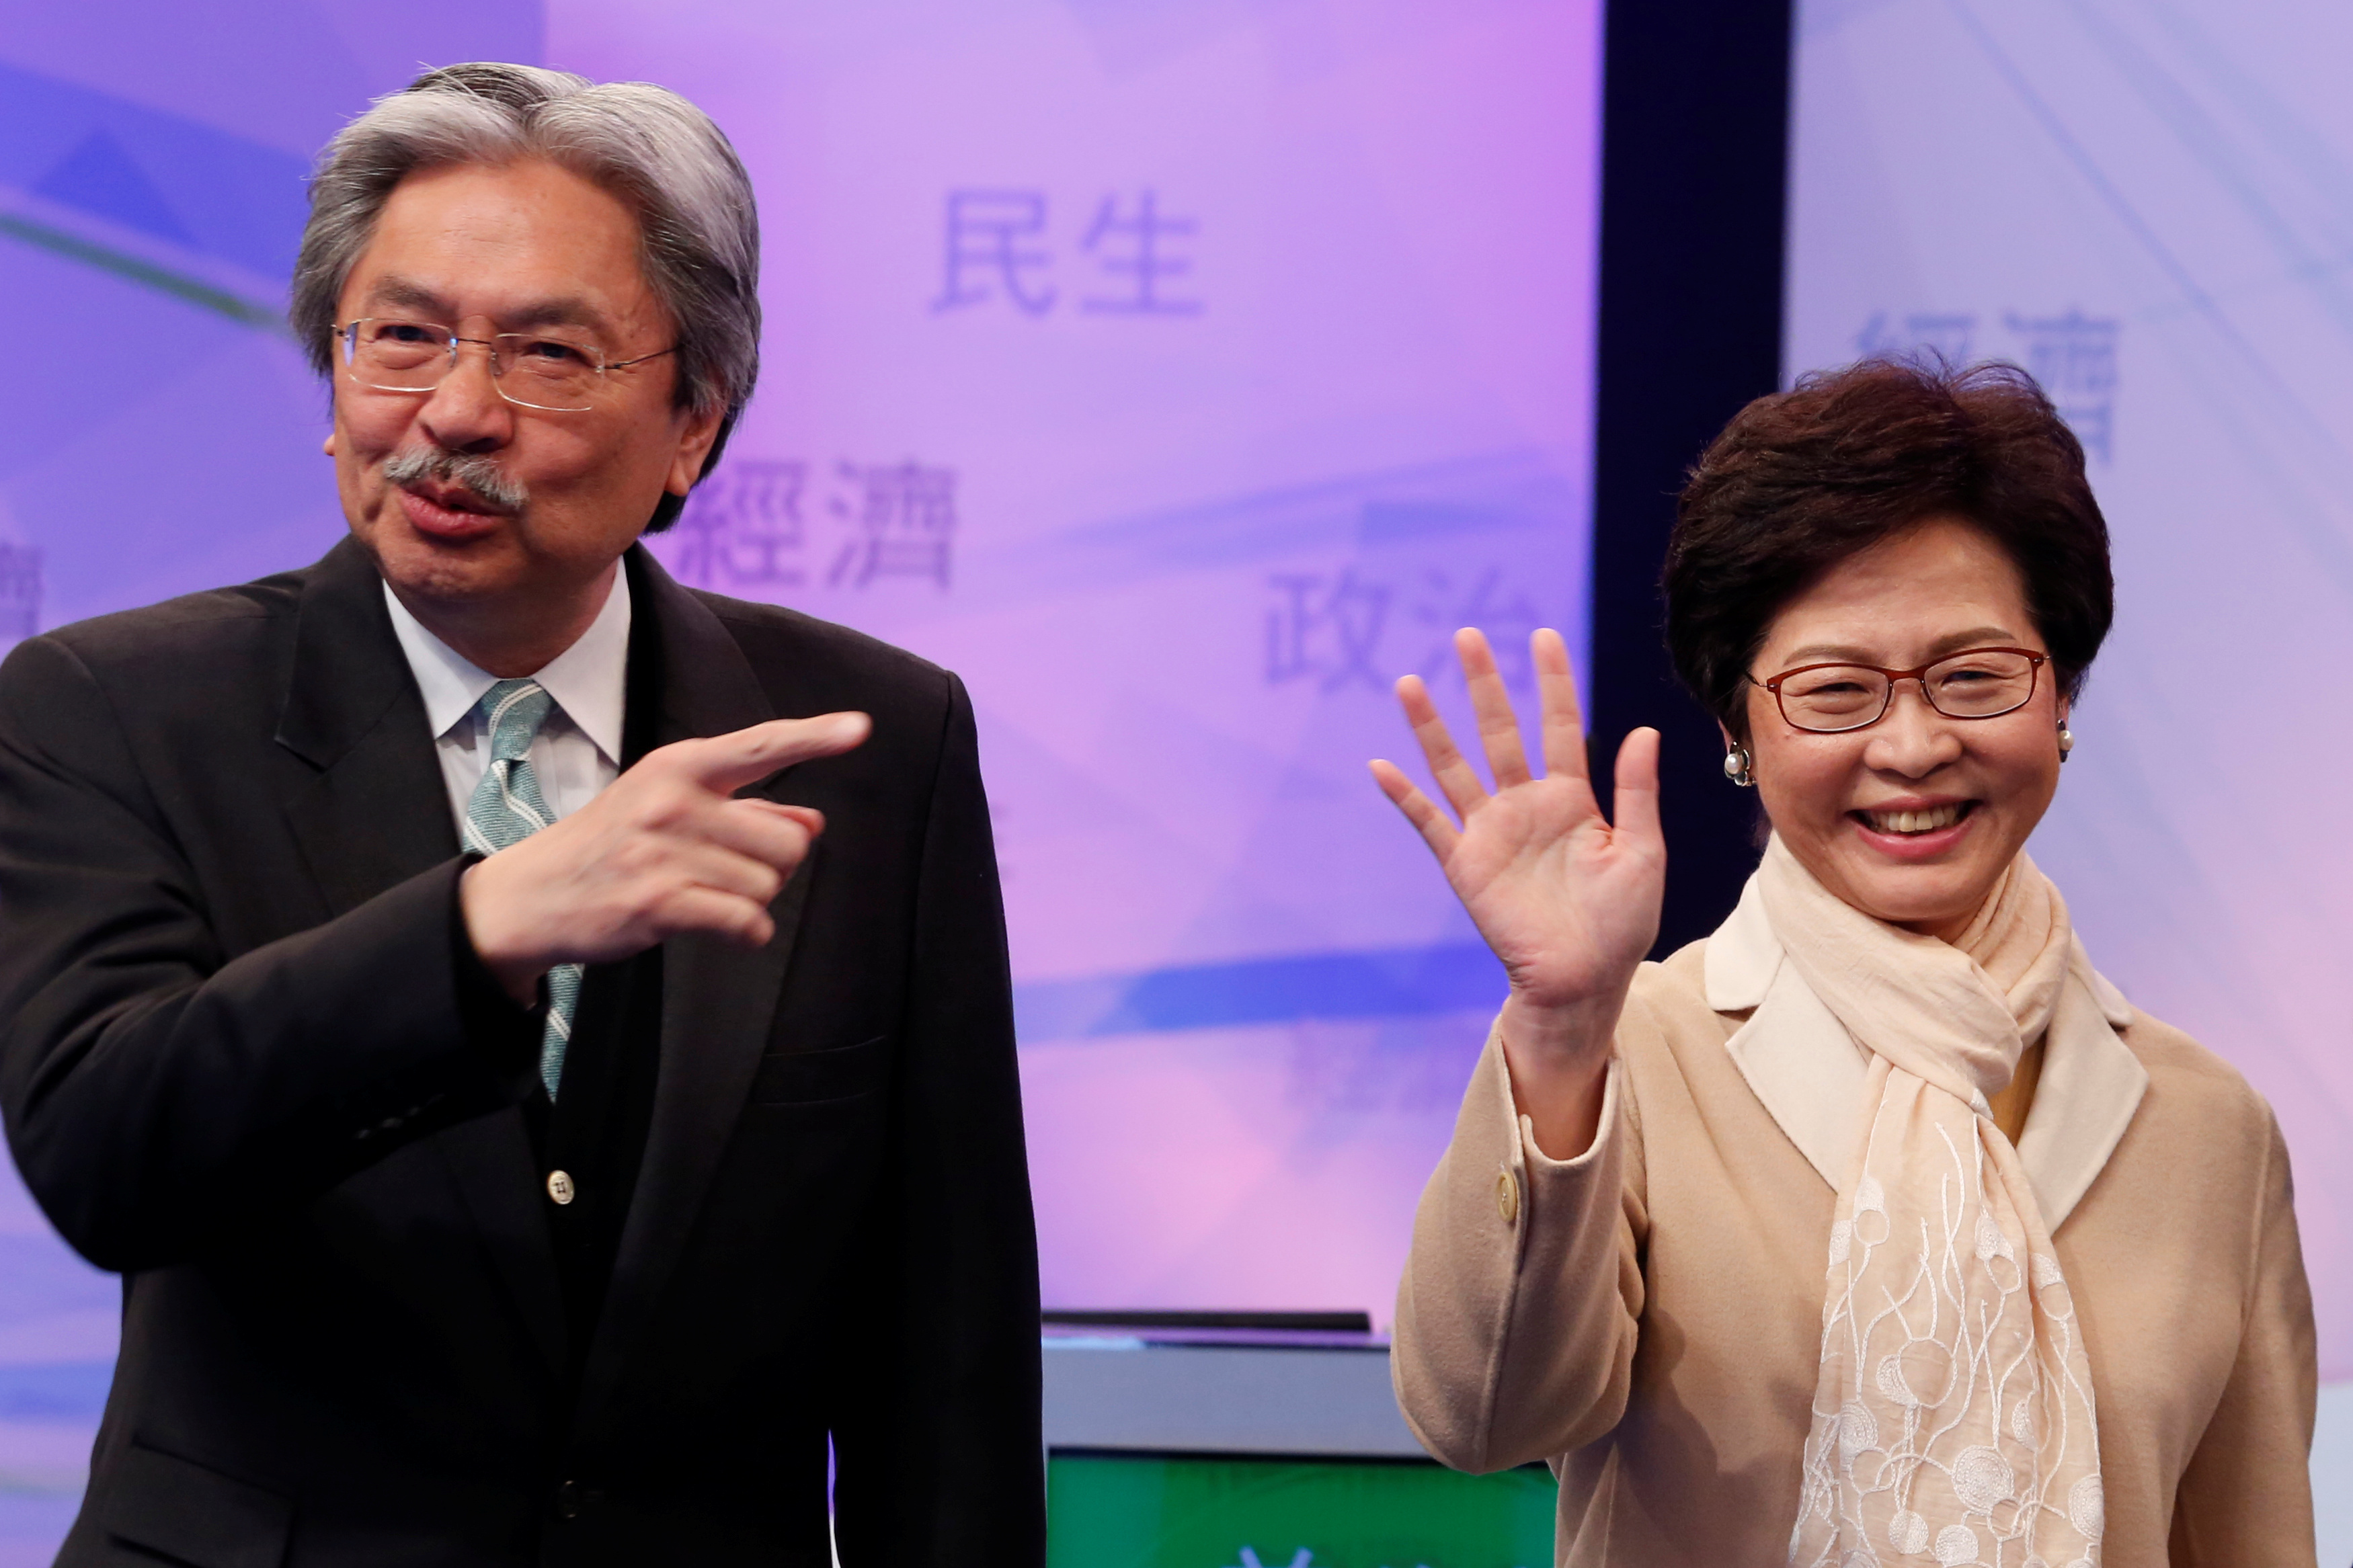 Chief Executive candidates, former Financial Secretary John Tsang and former Chief Secretary Carrie Lam, react before a debate in Hong Kong on March 14, 2017